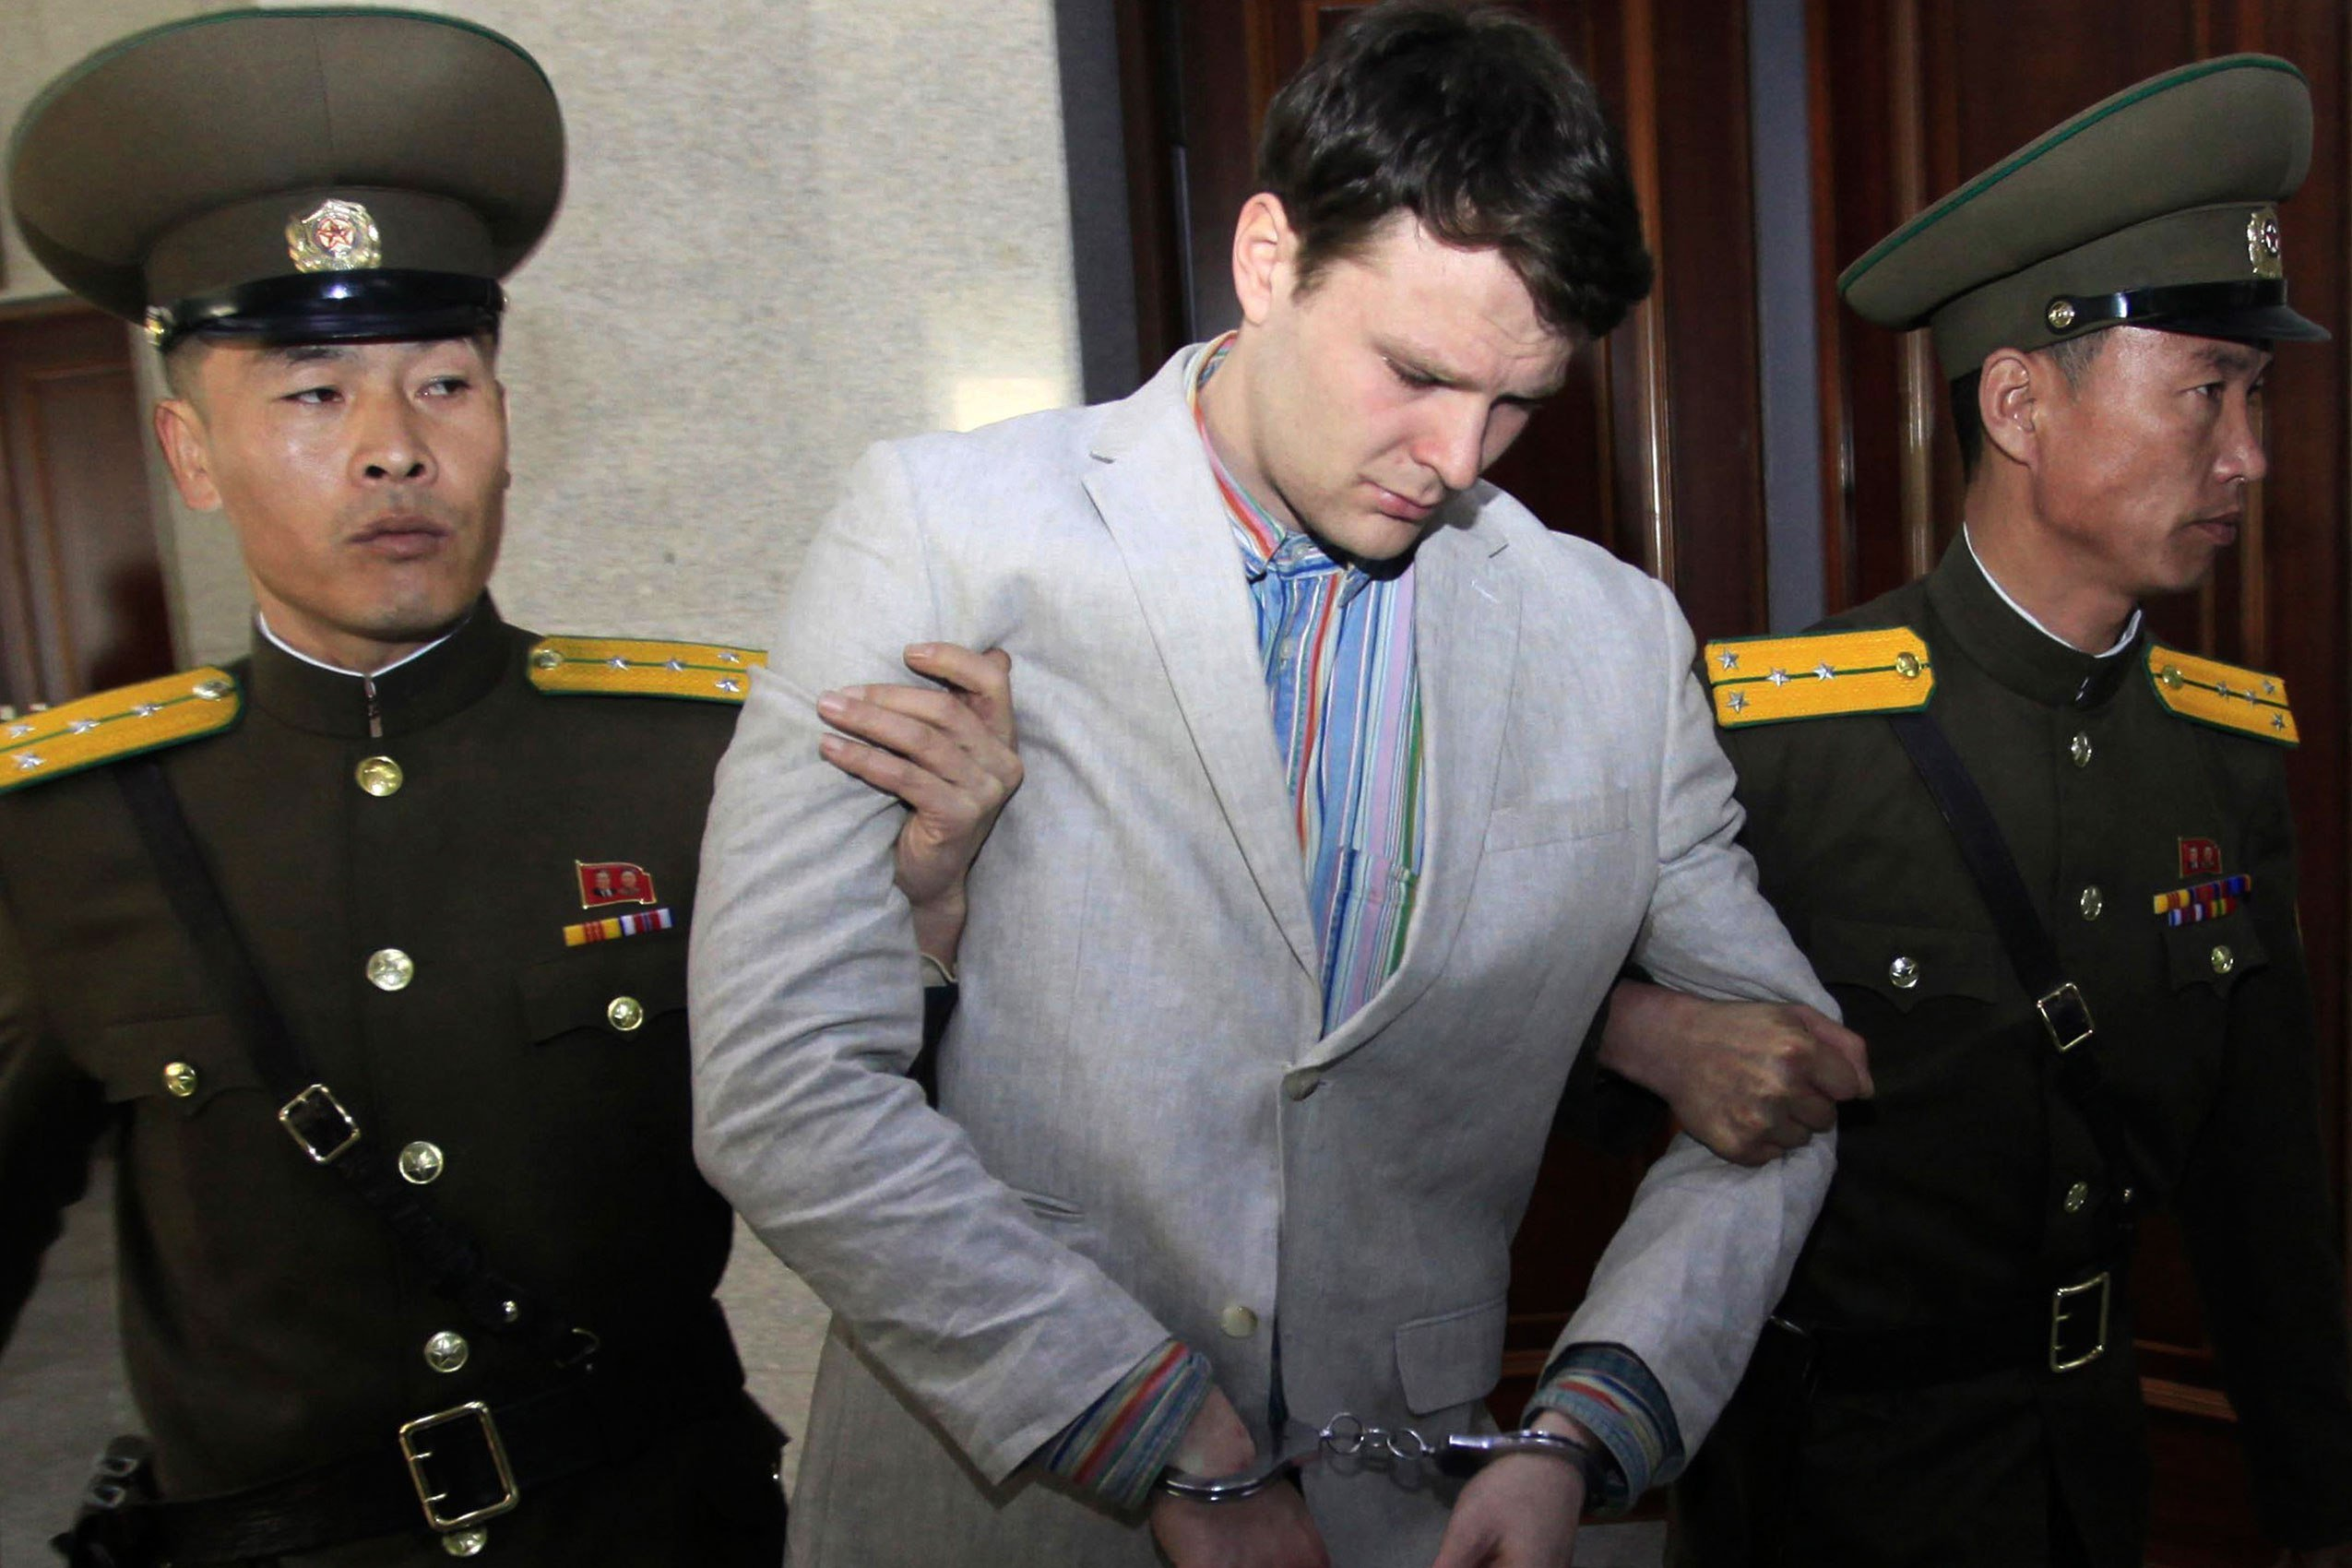 Trump believes Kim had nothing to do with Otto Warmbier's death